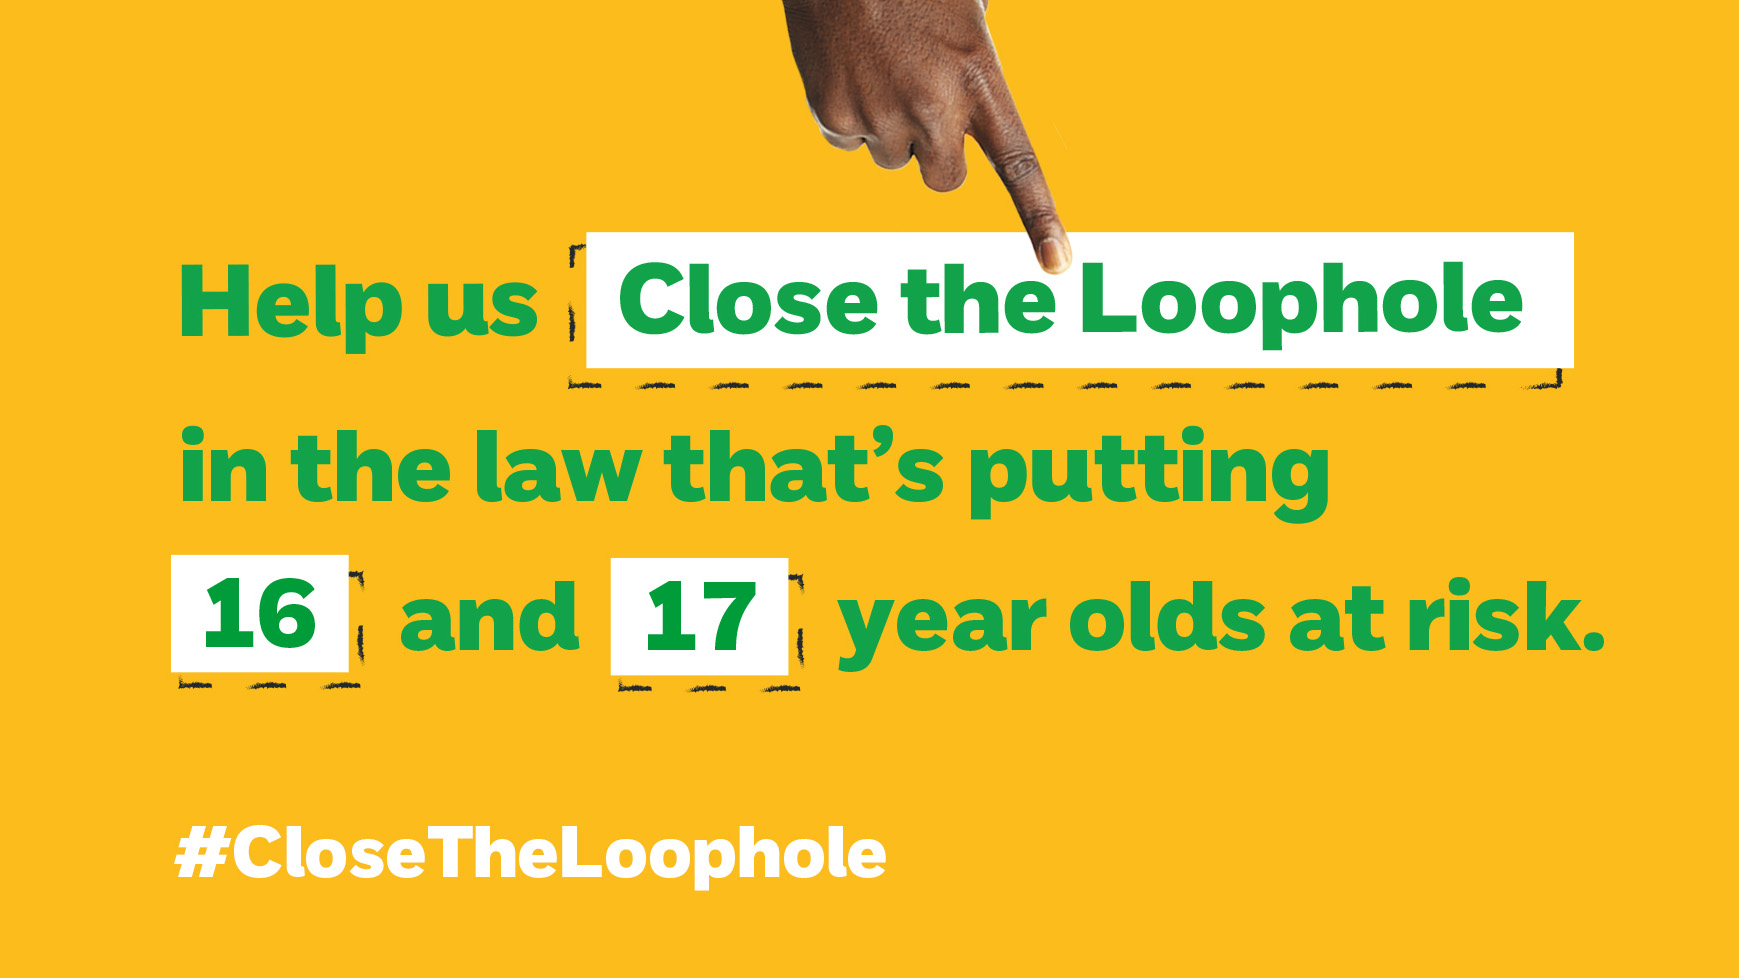 Help us Close the Loophole in the law that's putting 16 and 17 year olds at risk.